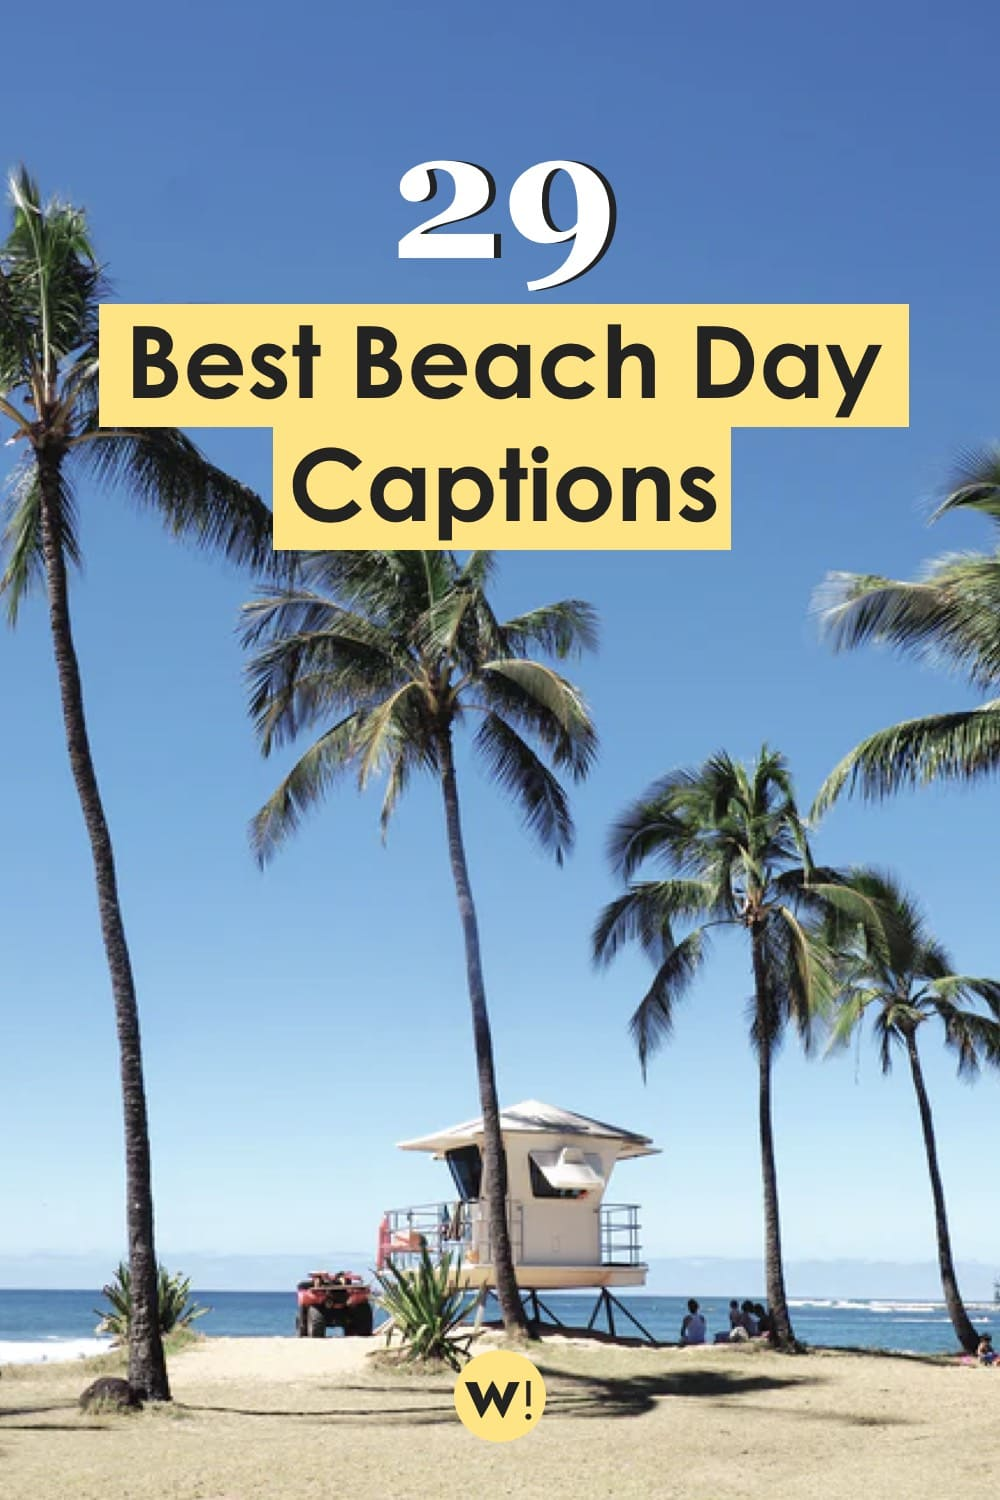 Looking for the best beach day quotes? Then you're in luck, because this is exactly what you'll find in this article. All of the quotes below are related to beach days, and they all make forgood beach day captions! beach day quotes |beach day captions for instagram | beach sayings and quotes | ocean quotes beach | beach quotes instagram caption |sea quotes beach